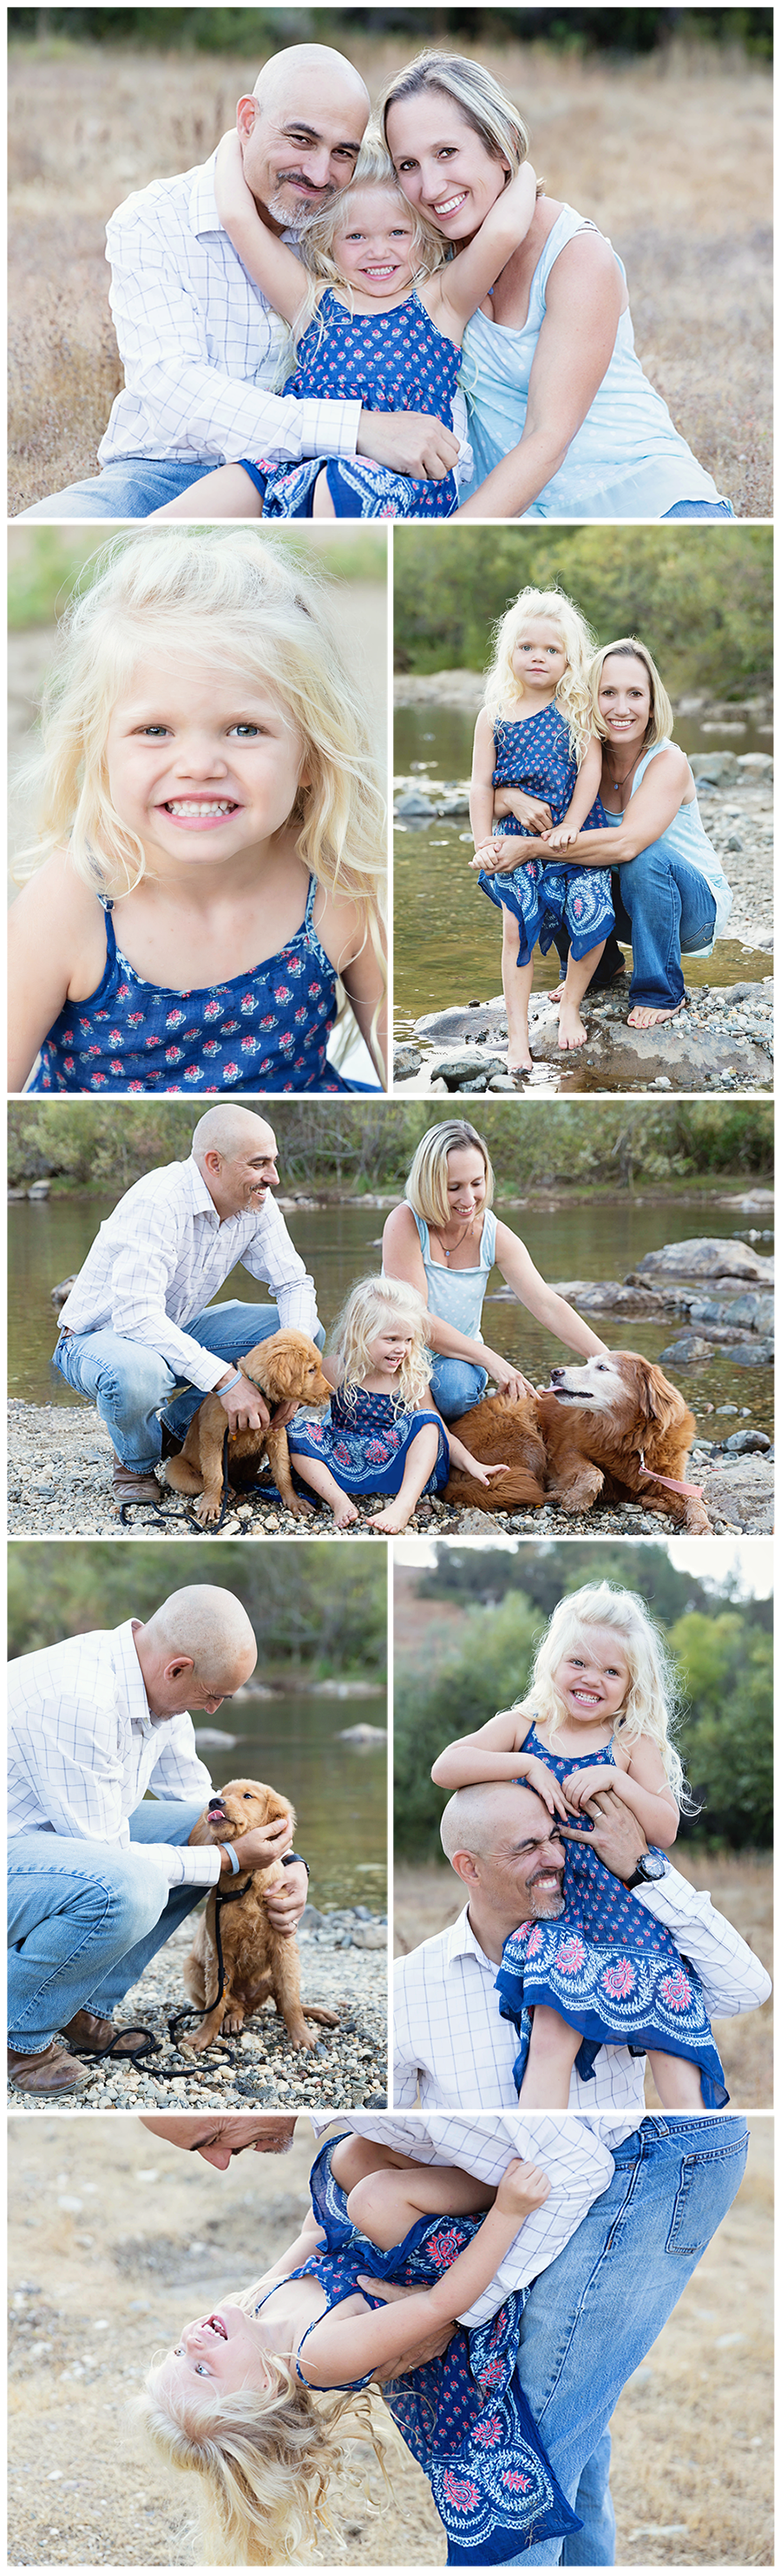 Outdoor family photography can be fun! Especially when a little girl, two dogs, and a river are involved.